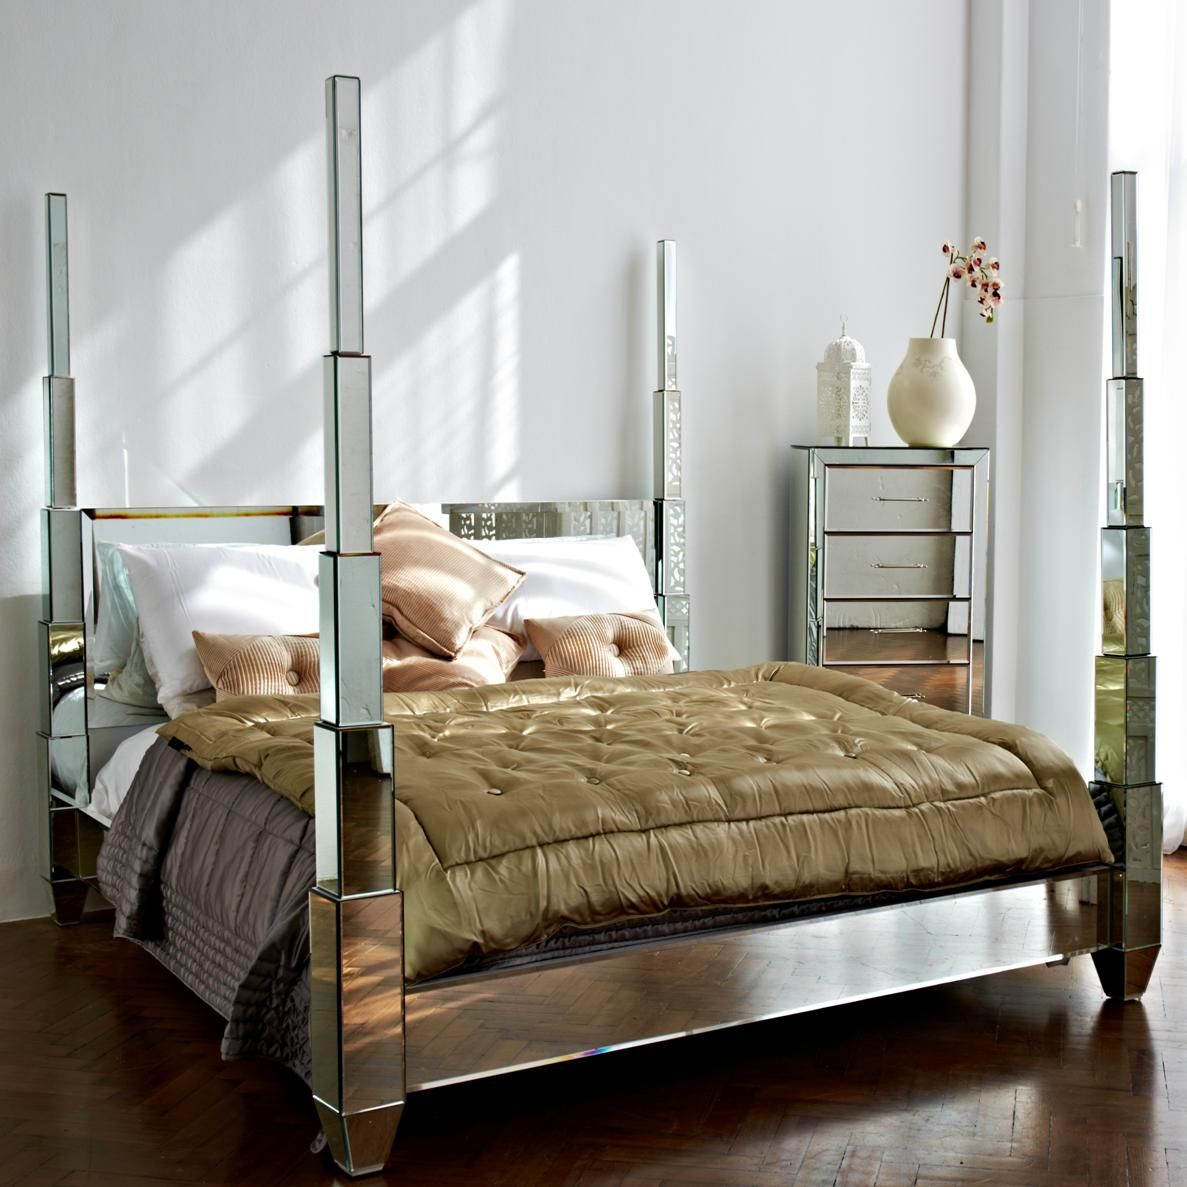 Prism Mirrored Statement Bed Company